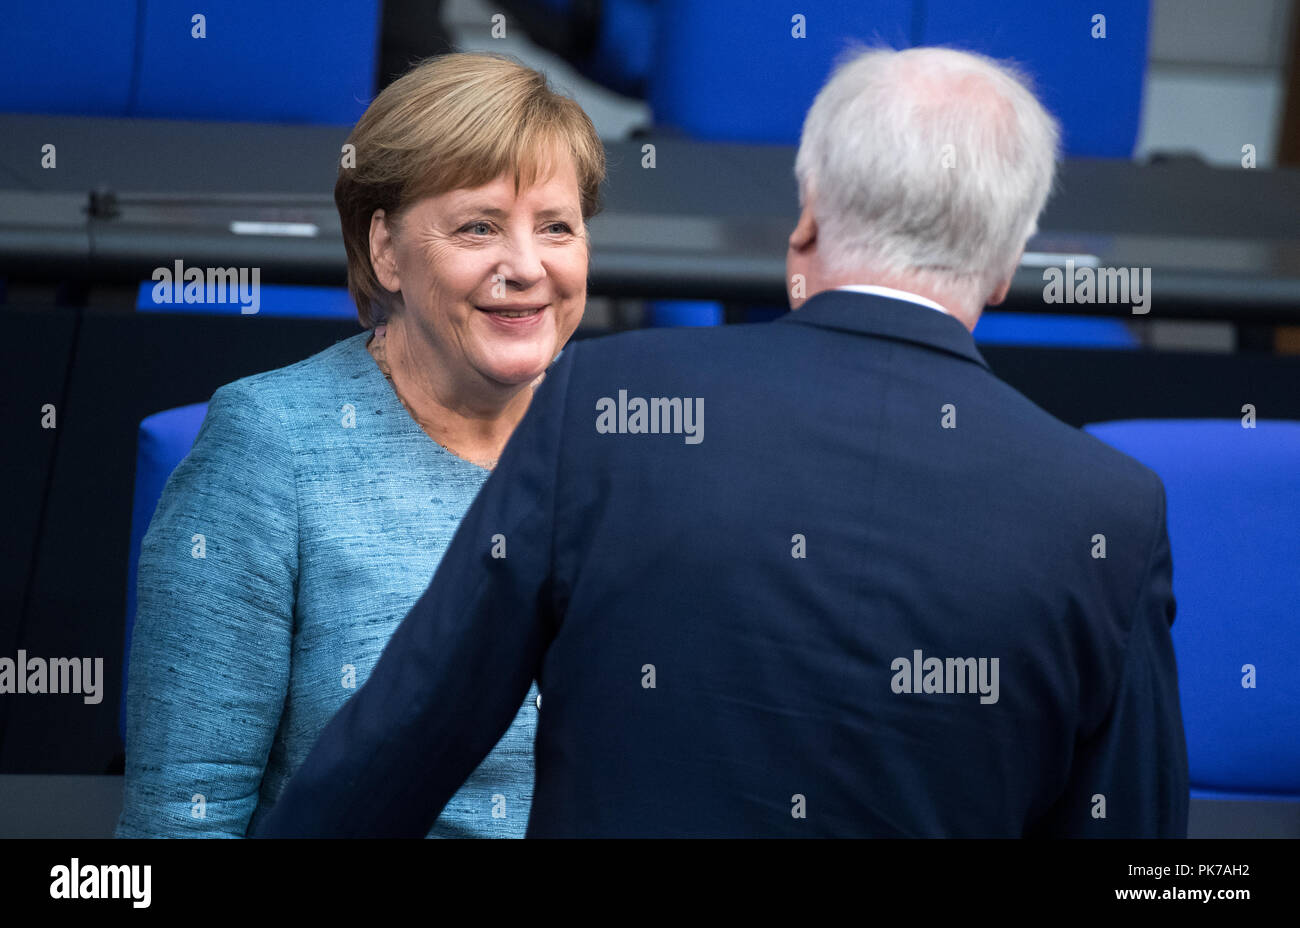 Berlin, Germany. 11th Sept, 2018. German Chancellor Angela Merkel (l, CDU) and Horst Seehofer (CSU), Federal Minister of the Interior, Home and Construction, will discuss the matter at the beginning of the plenary session in the German Bundestag. The main topic of the 47th session of the 19th legislative period is the Federal Government's draft budget 2019 and the federal budget 2018 to 2022. Photo: Kay Nietfeld/dpa Credit: dpa picture alliance/Alamy Live News - Stock Image